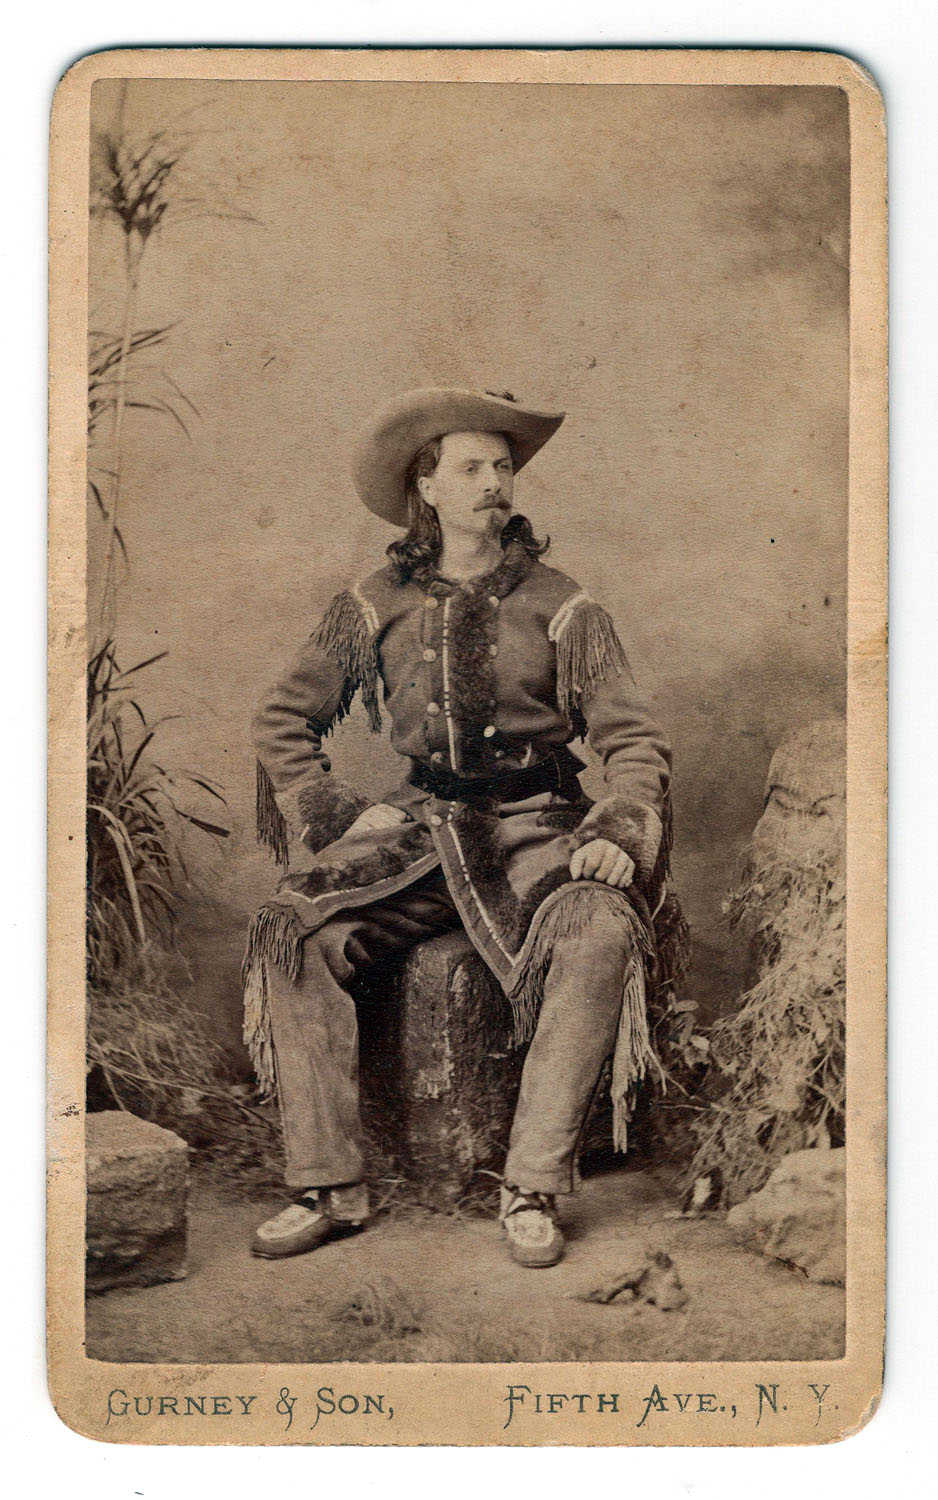 Buffalo Bill Cody Cabinet Card - Lot 372